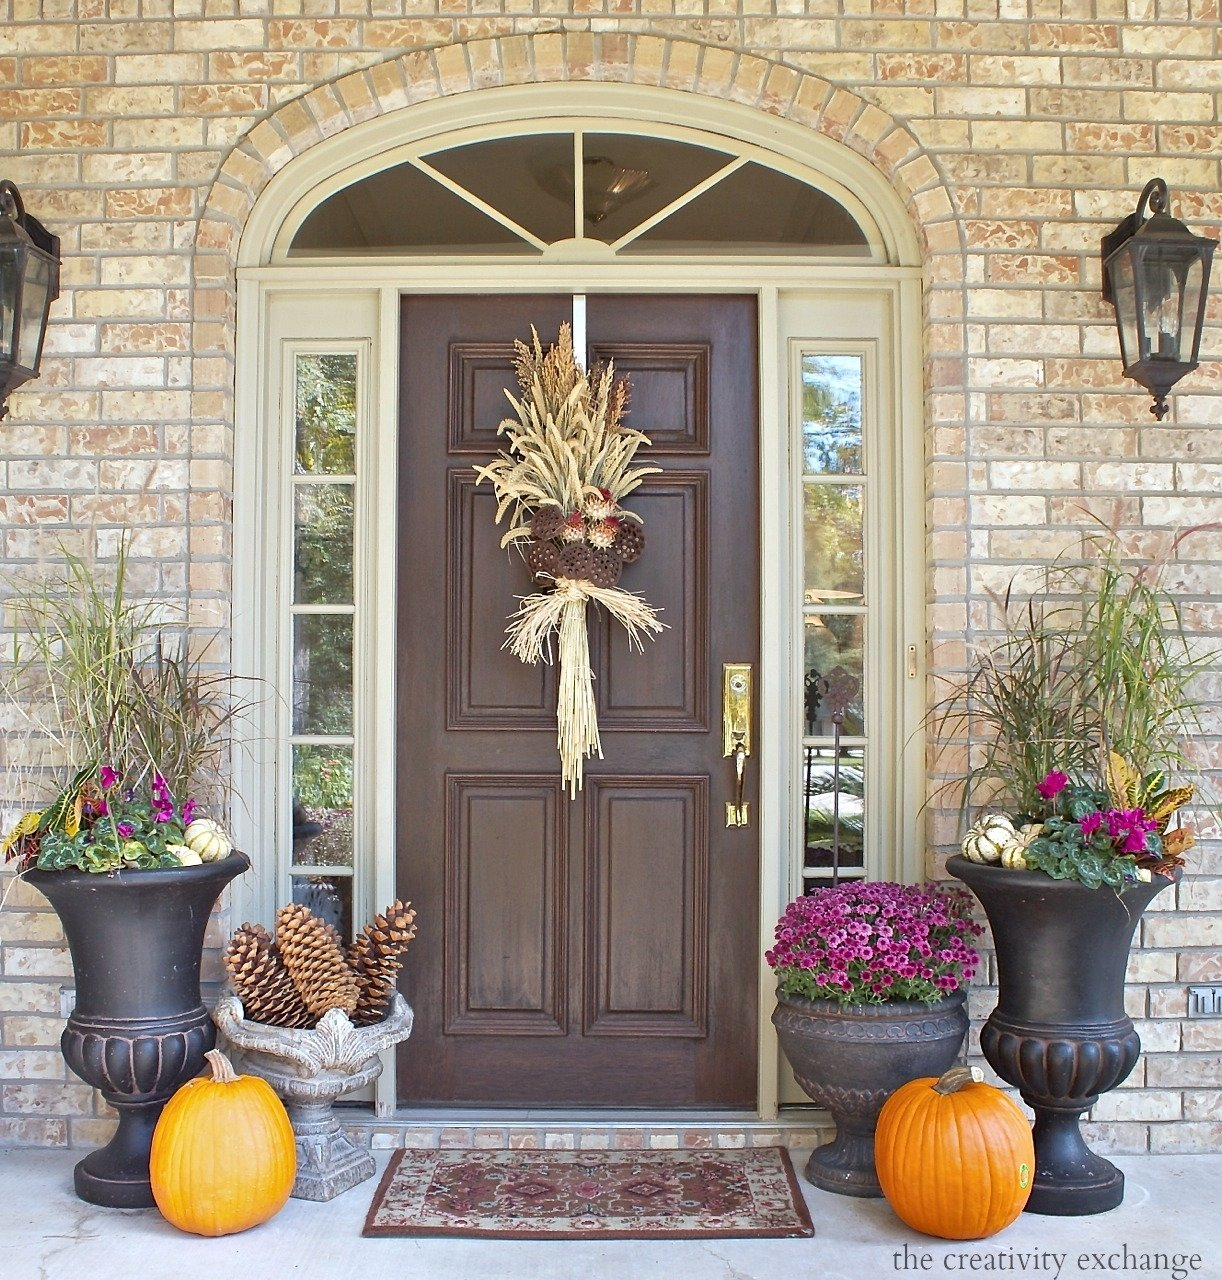 10 Lovely Front Door Fall Decorating Ideas fall front porch decorating ideas the creativity exchange front cute